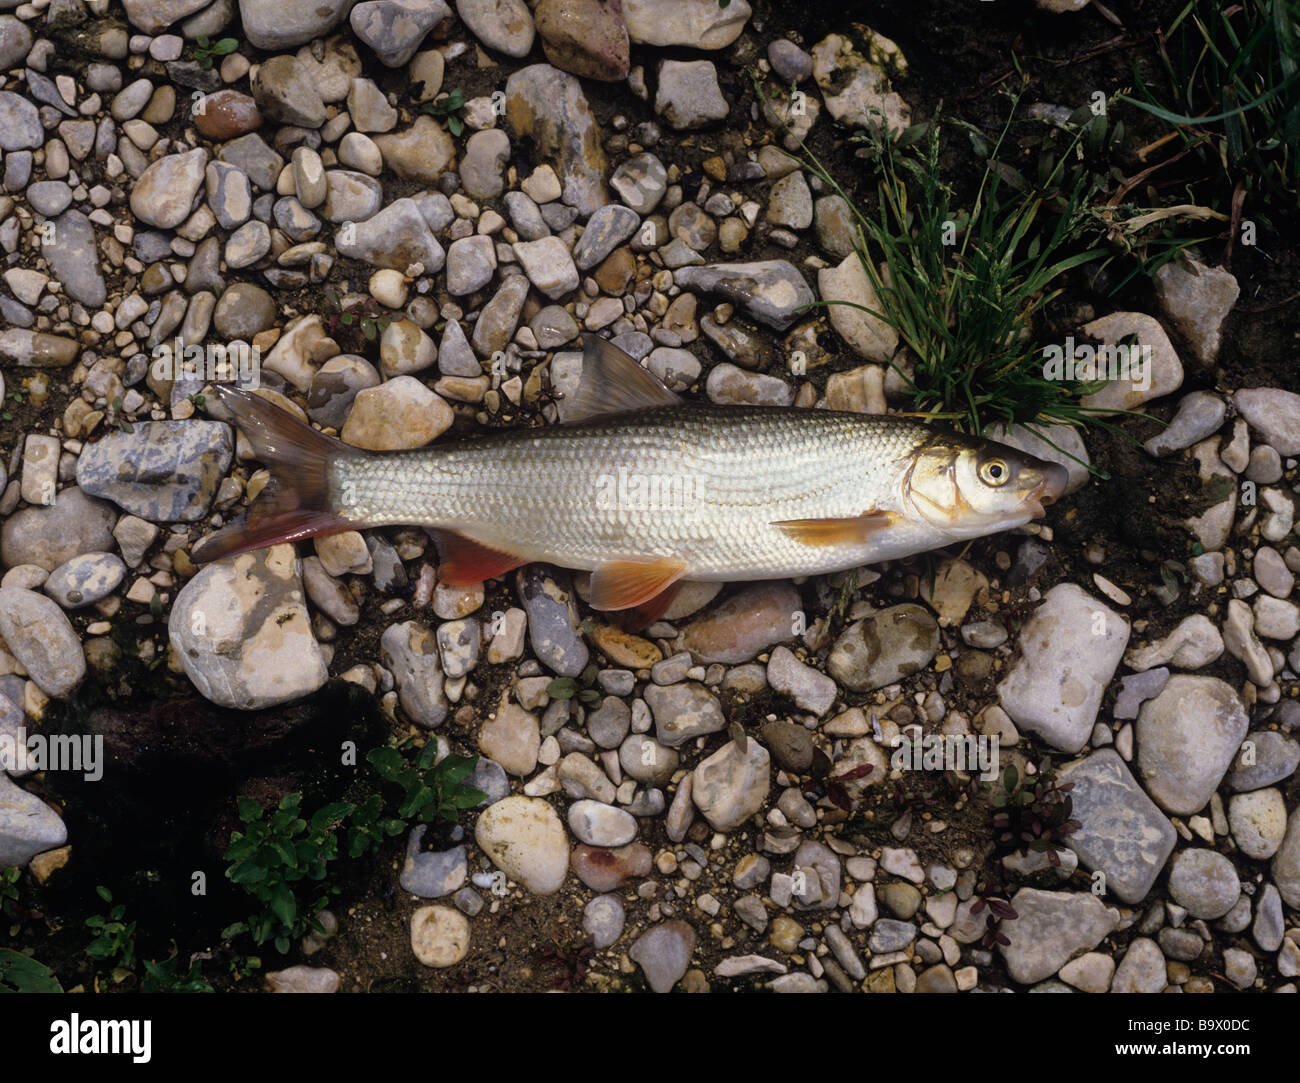 Nase Chondrostoma nasus, from river Ardeche - note the big nose. Photographed 16 May Stock Photo